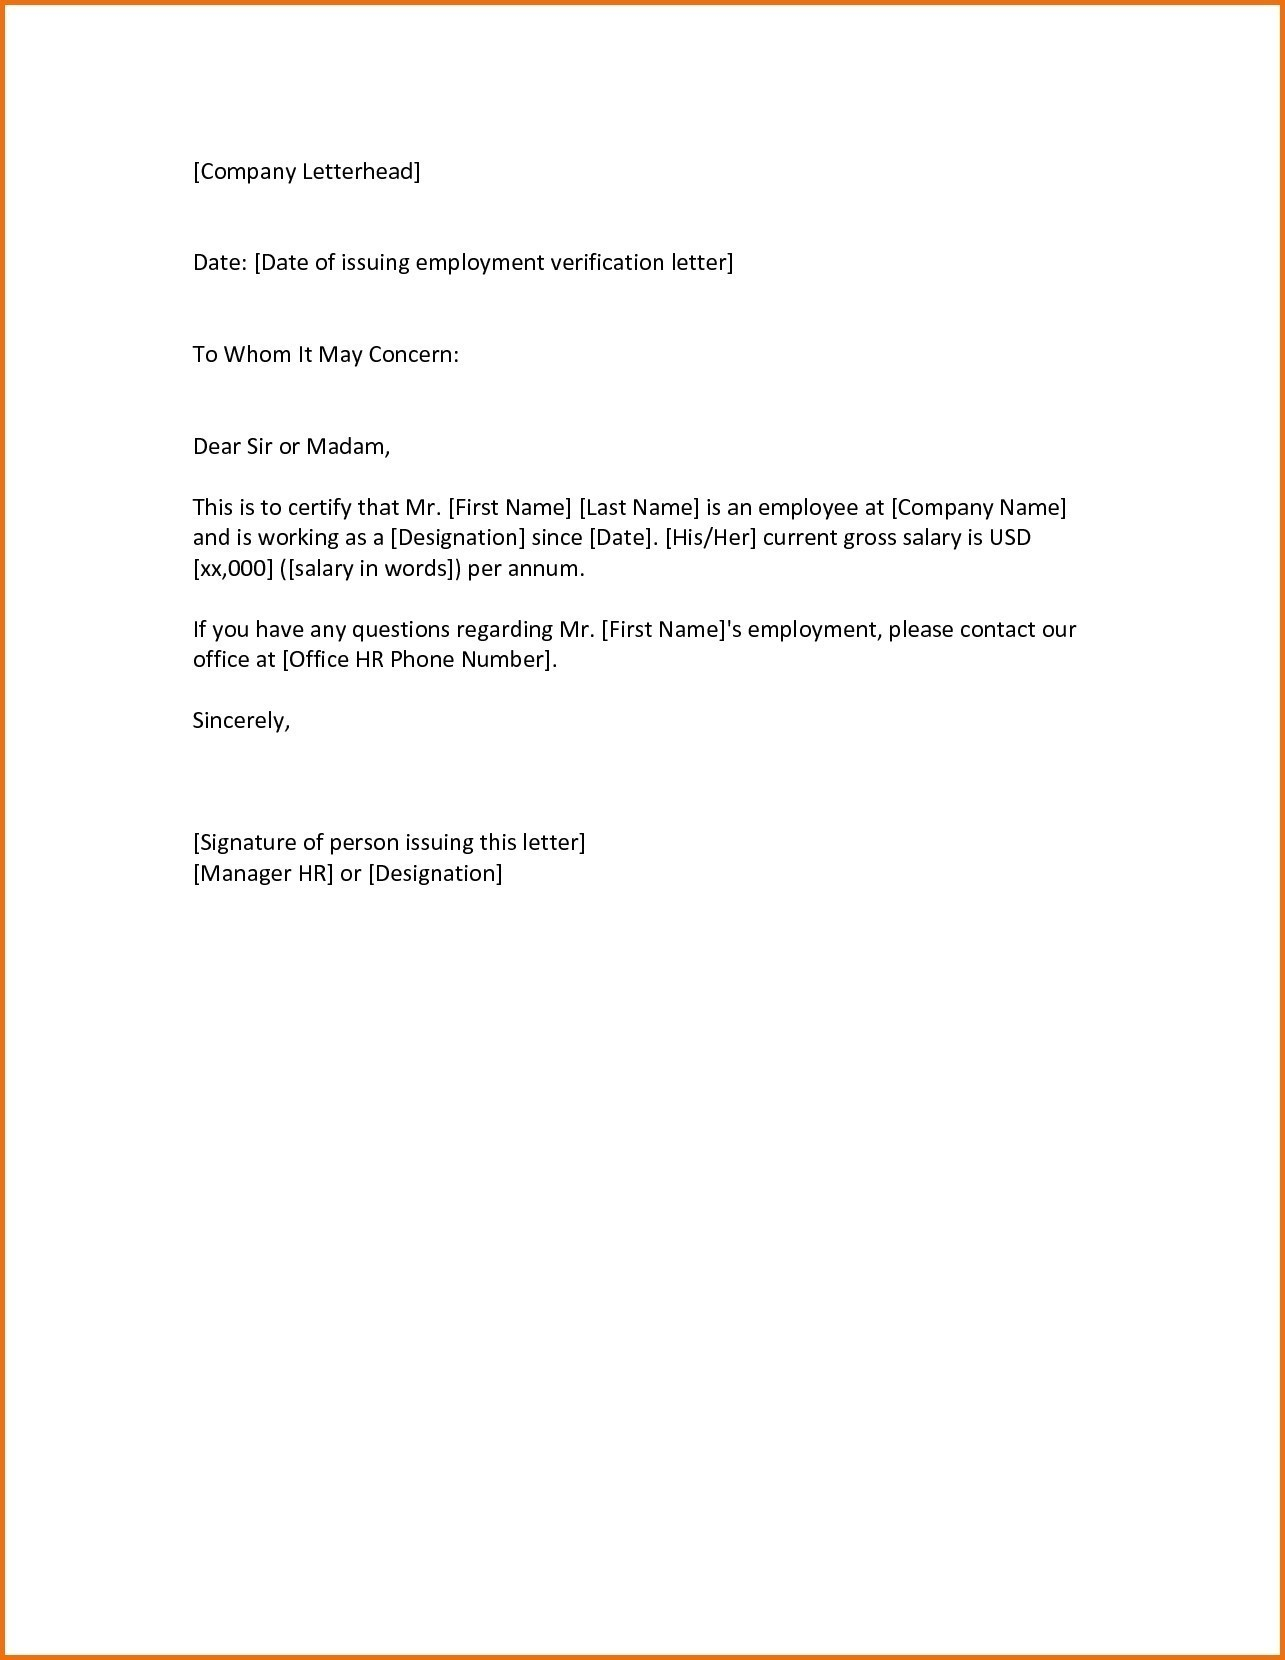 Request Letter Format To Whom It May Concern Fresh Pany Letter